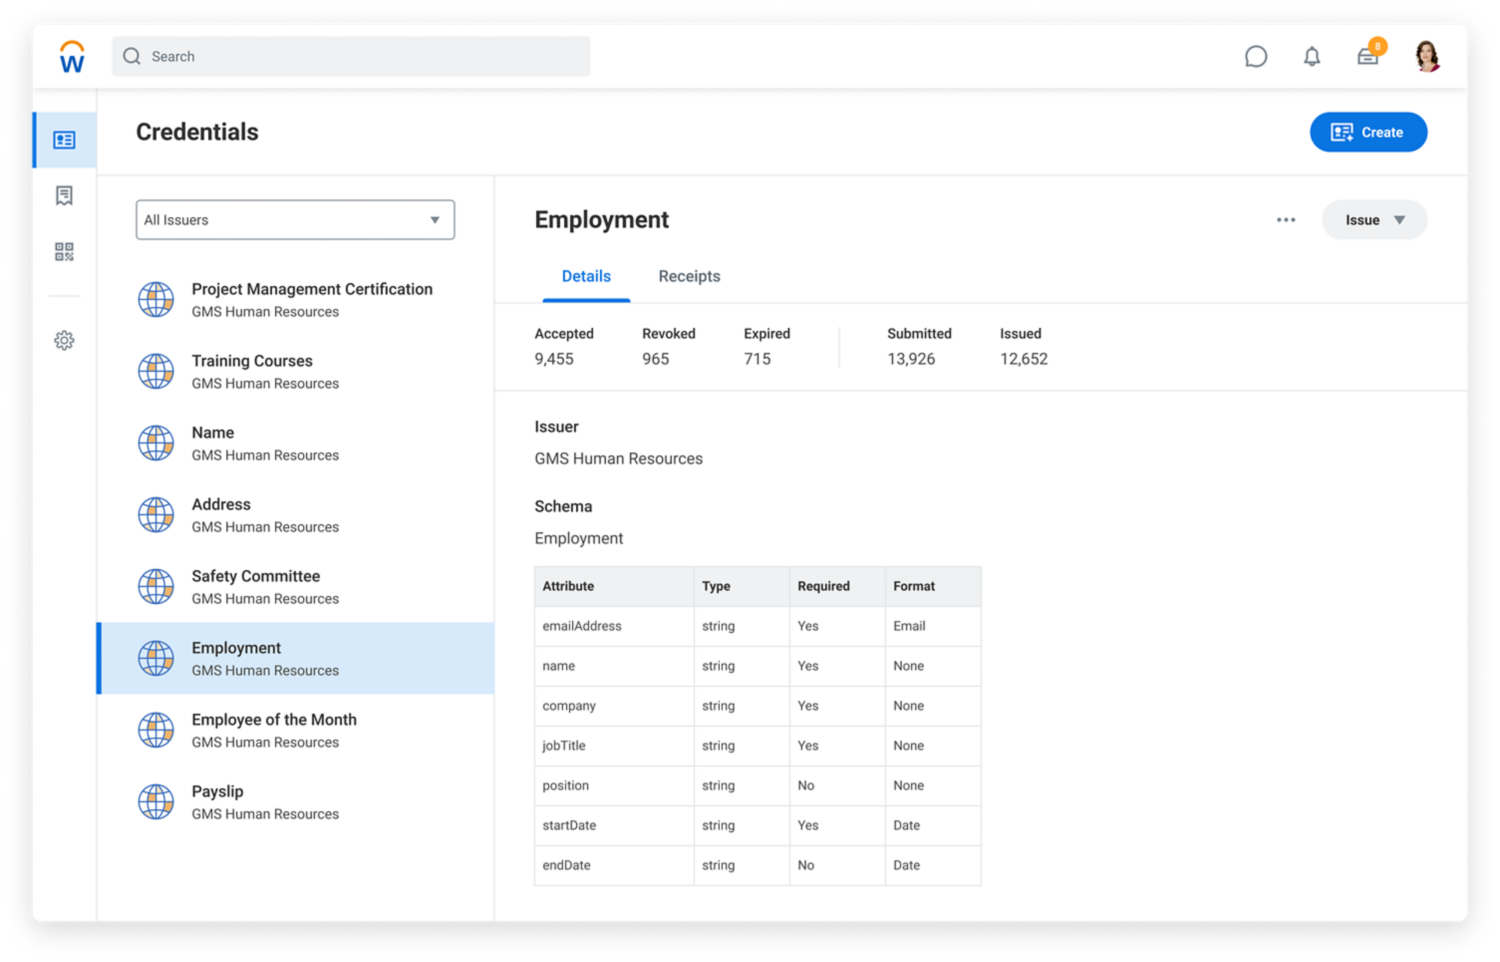 Credentials admin dashboard showing employment details. 2020R1